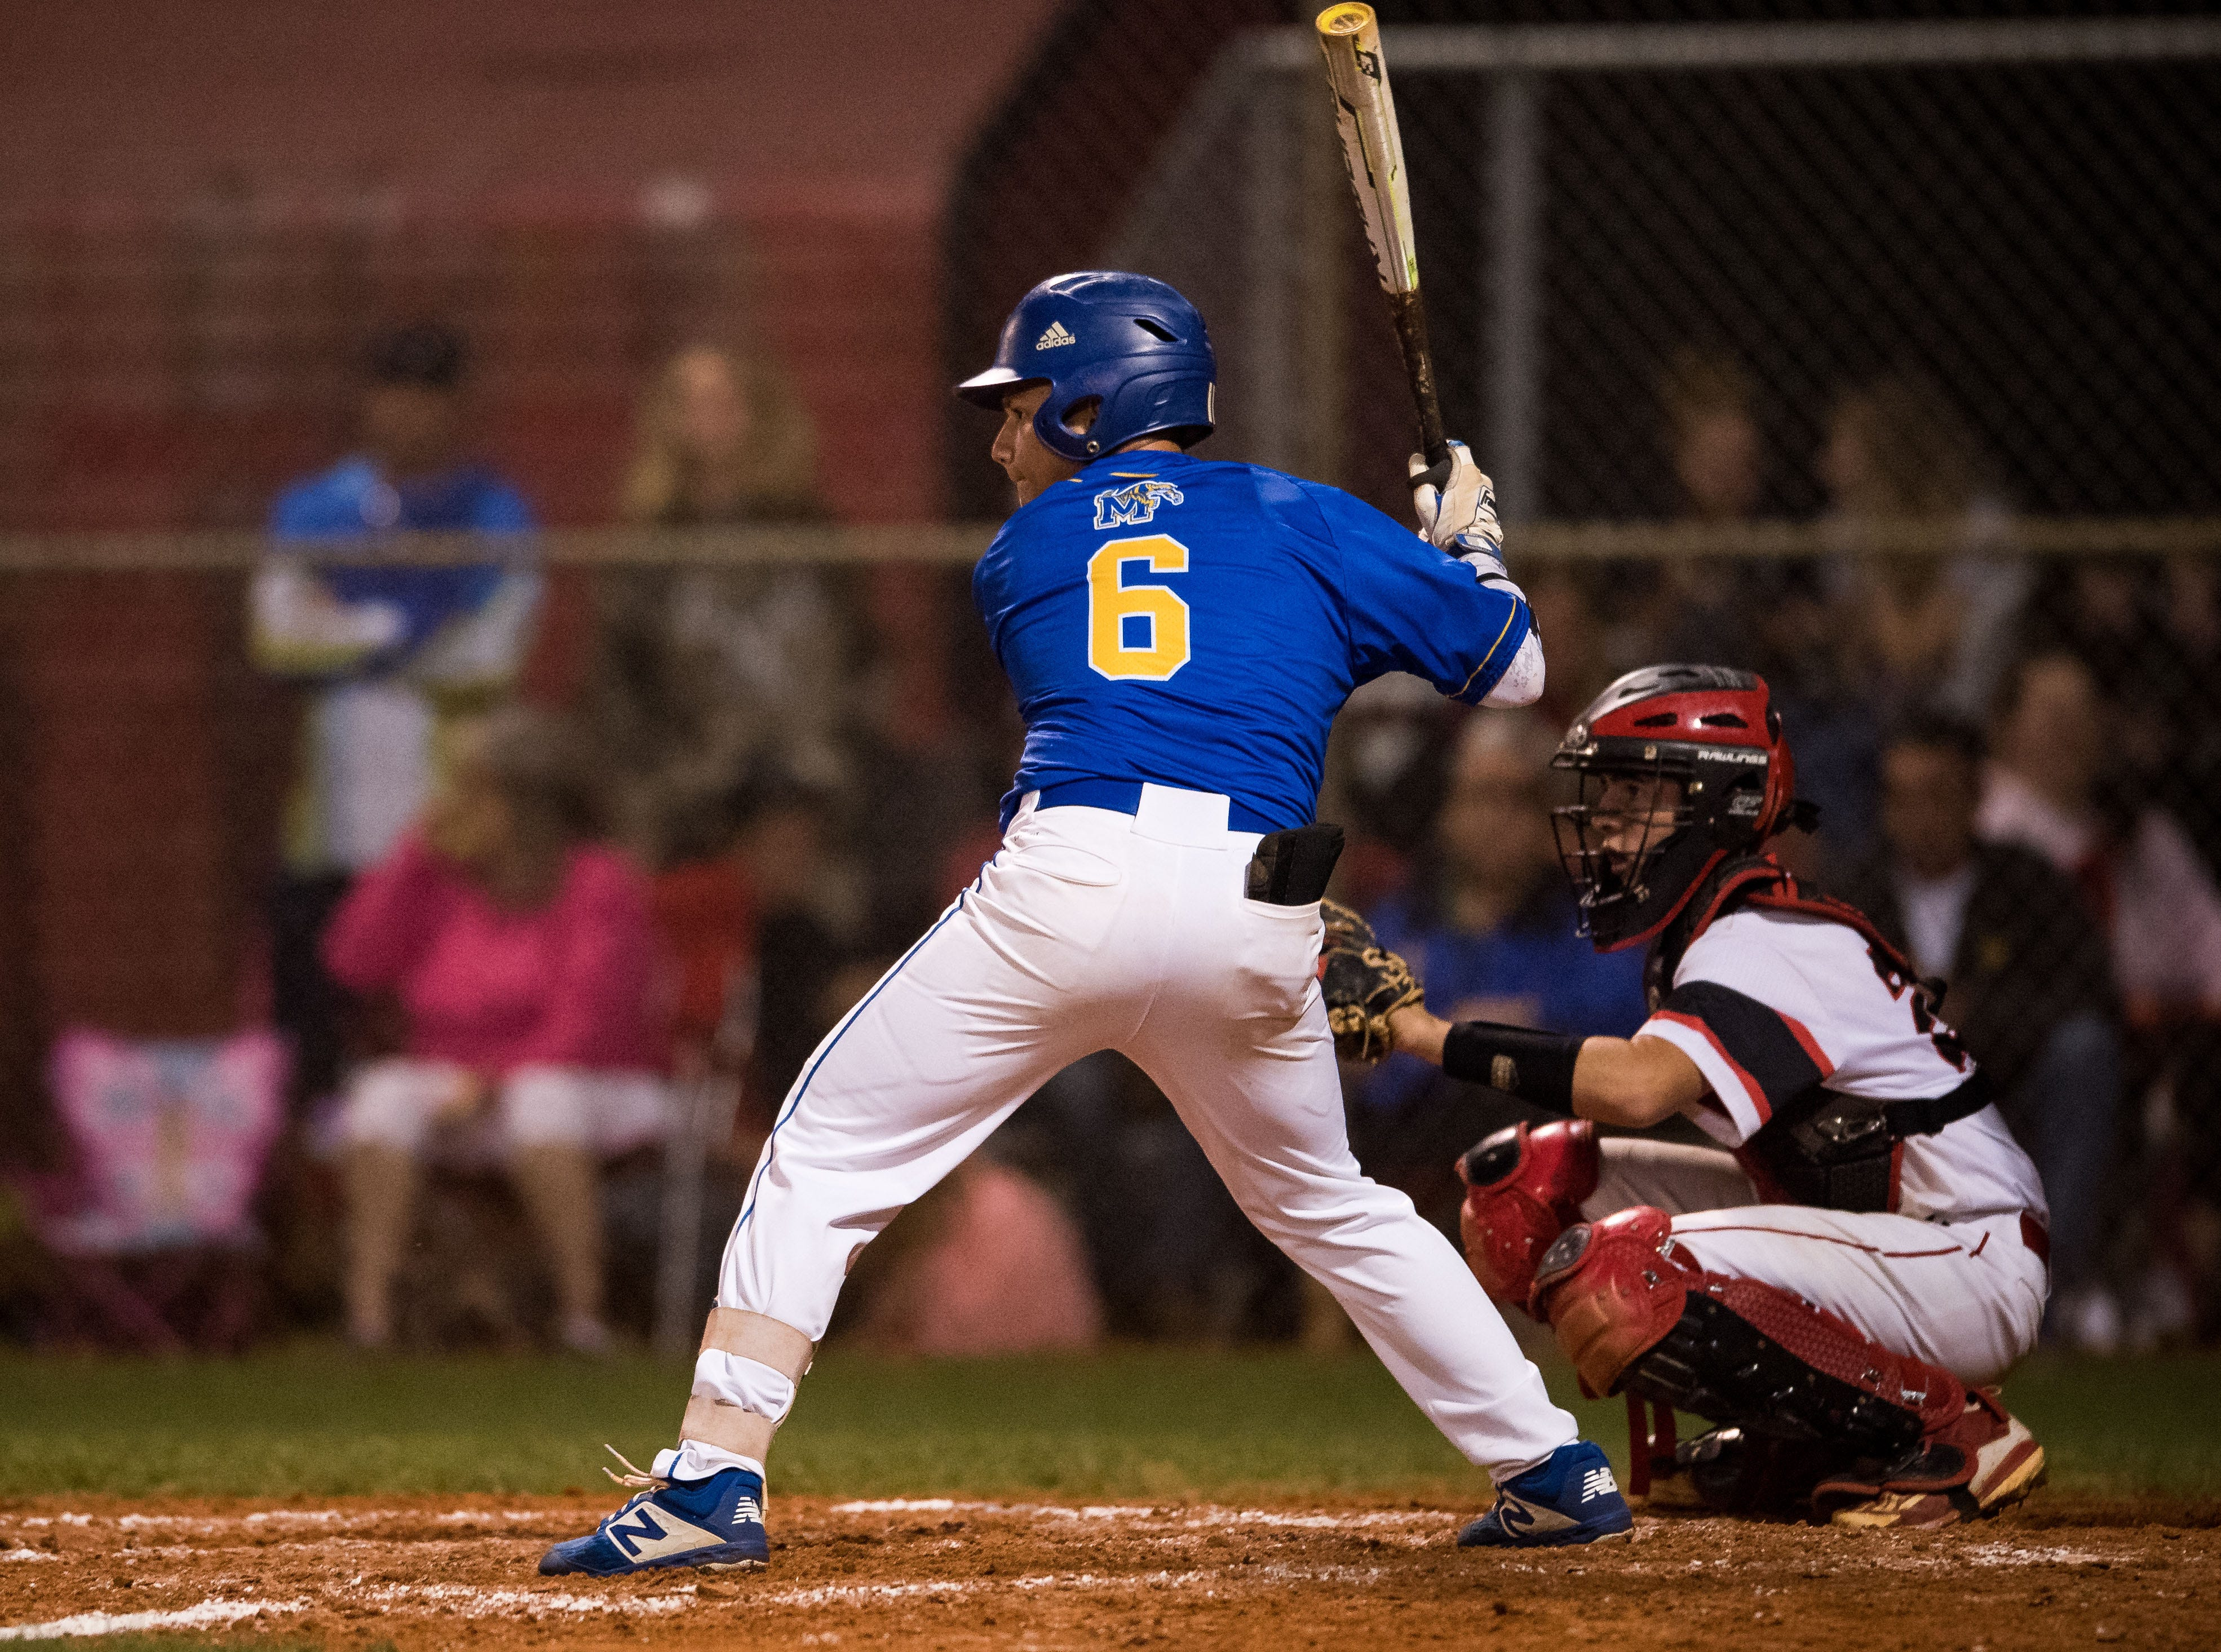 Martin County plays against South Fork during the 2019 Robbie Souza Classic high school baseball game Friday, March 22, 2019, at South Fork High School in Tropical Farms. Martin County won, 5-1.